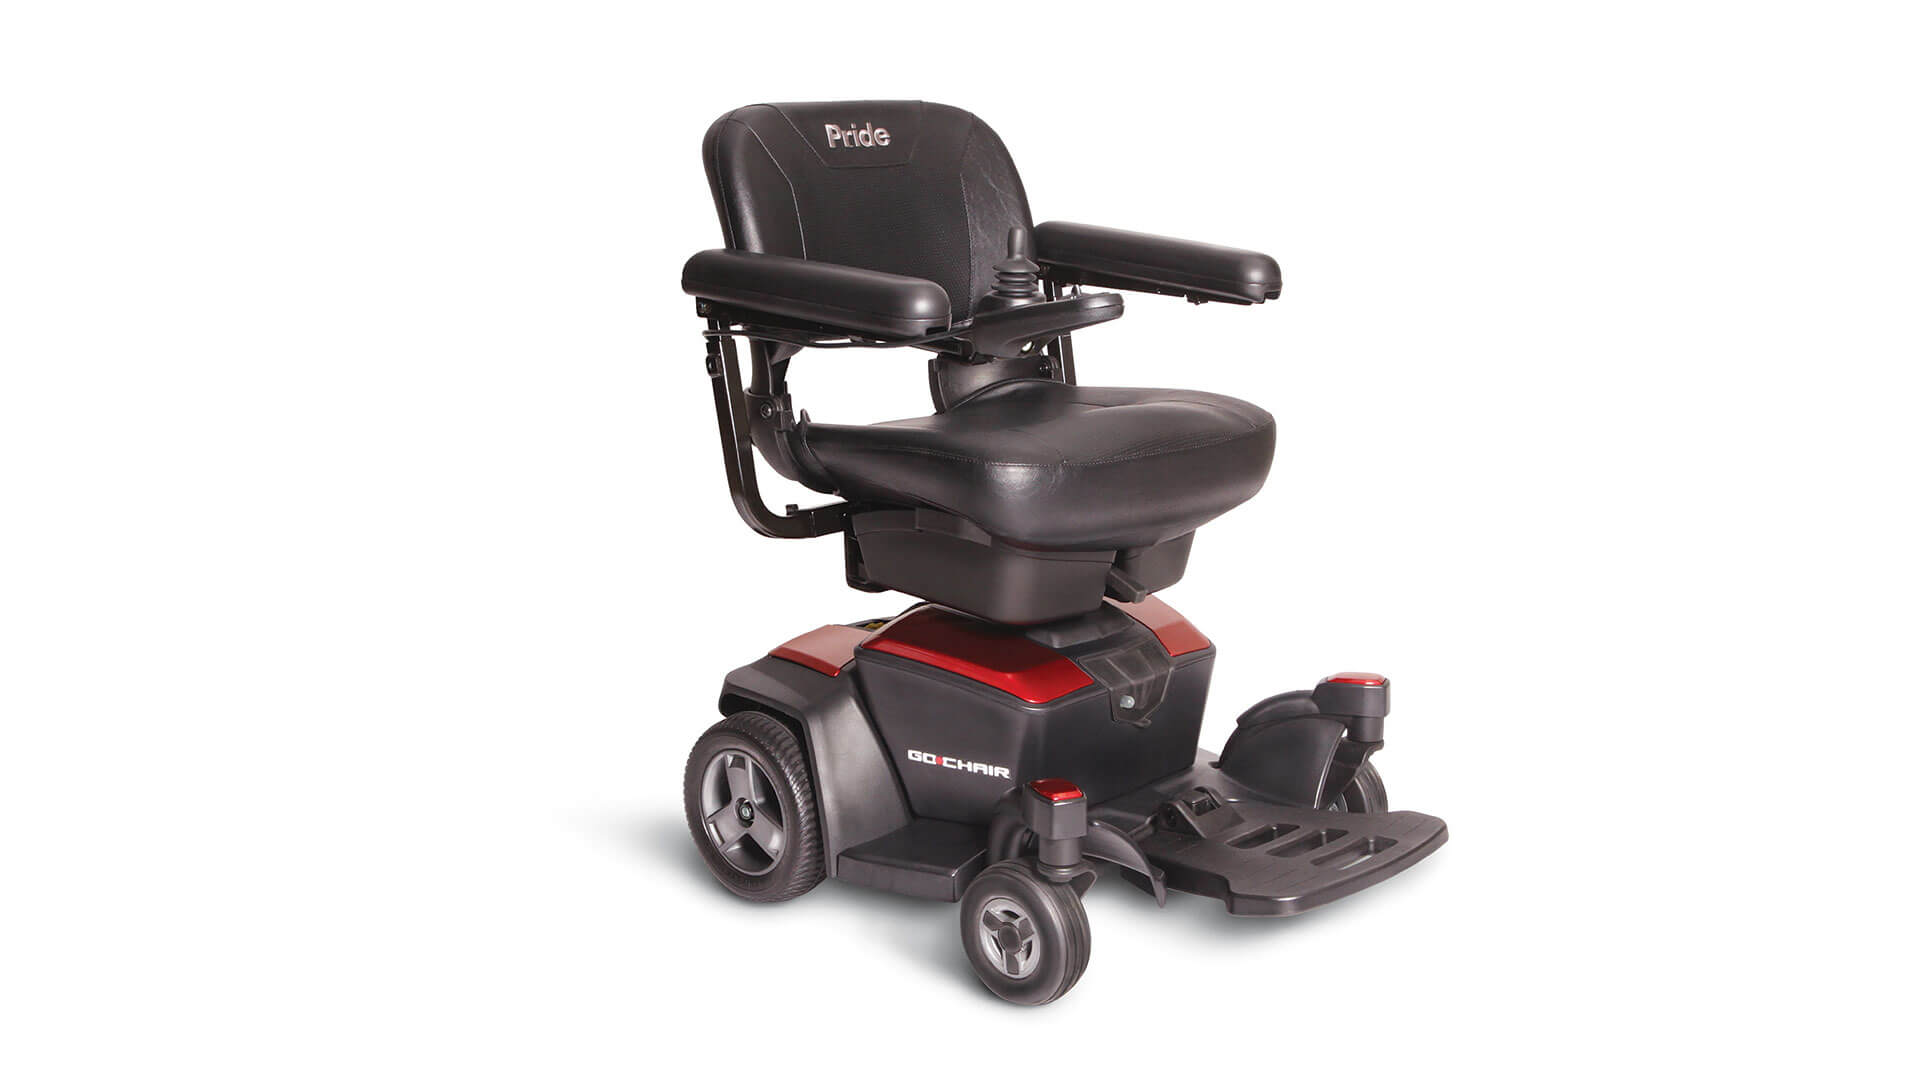 Best wheelchairs for elderly Pride Go-Chair